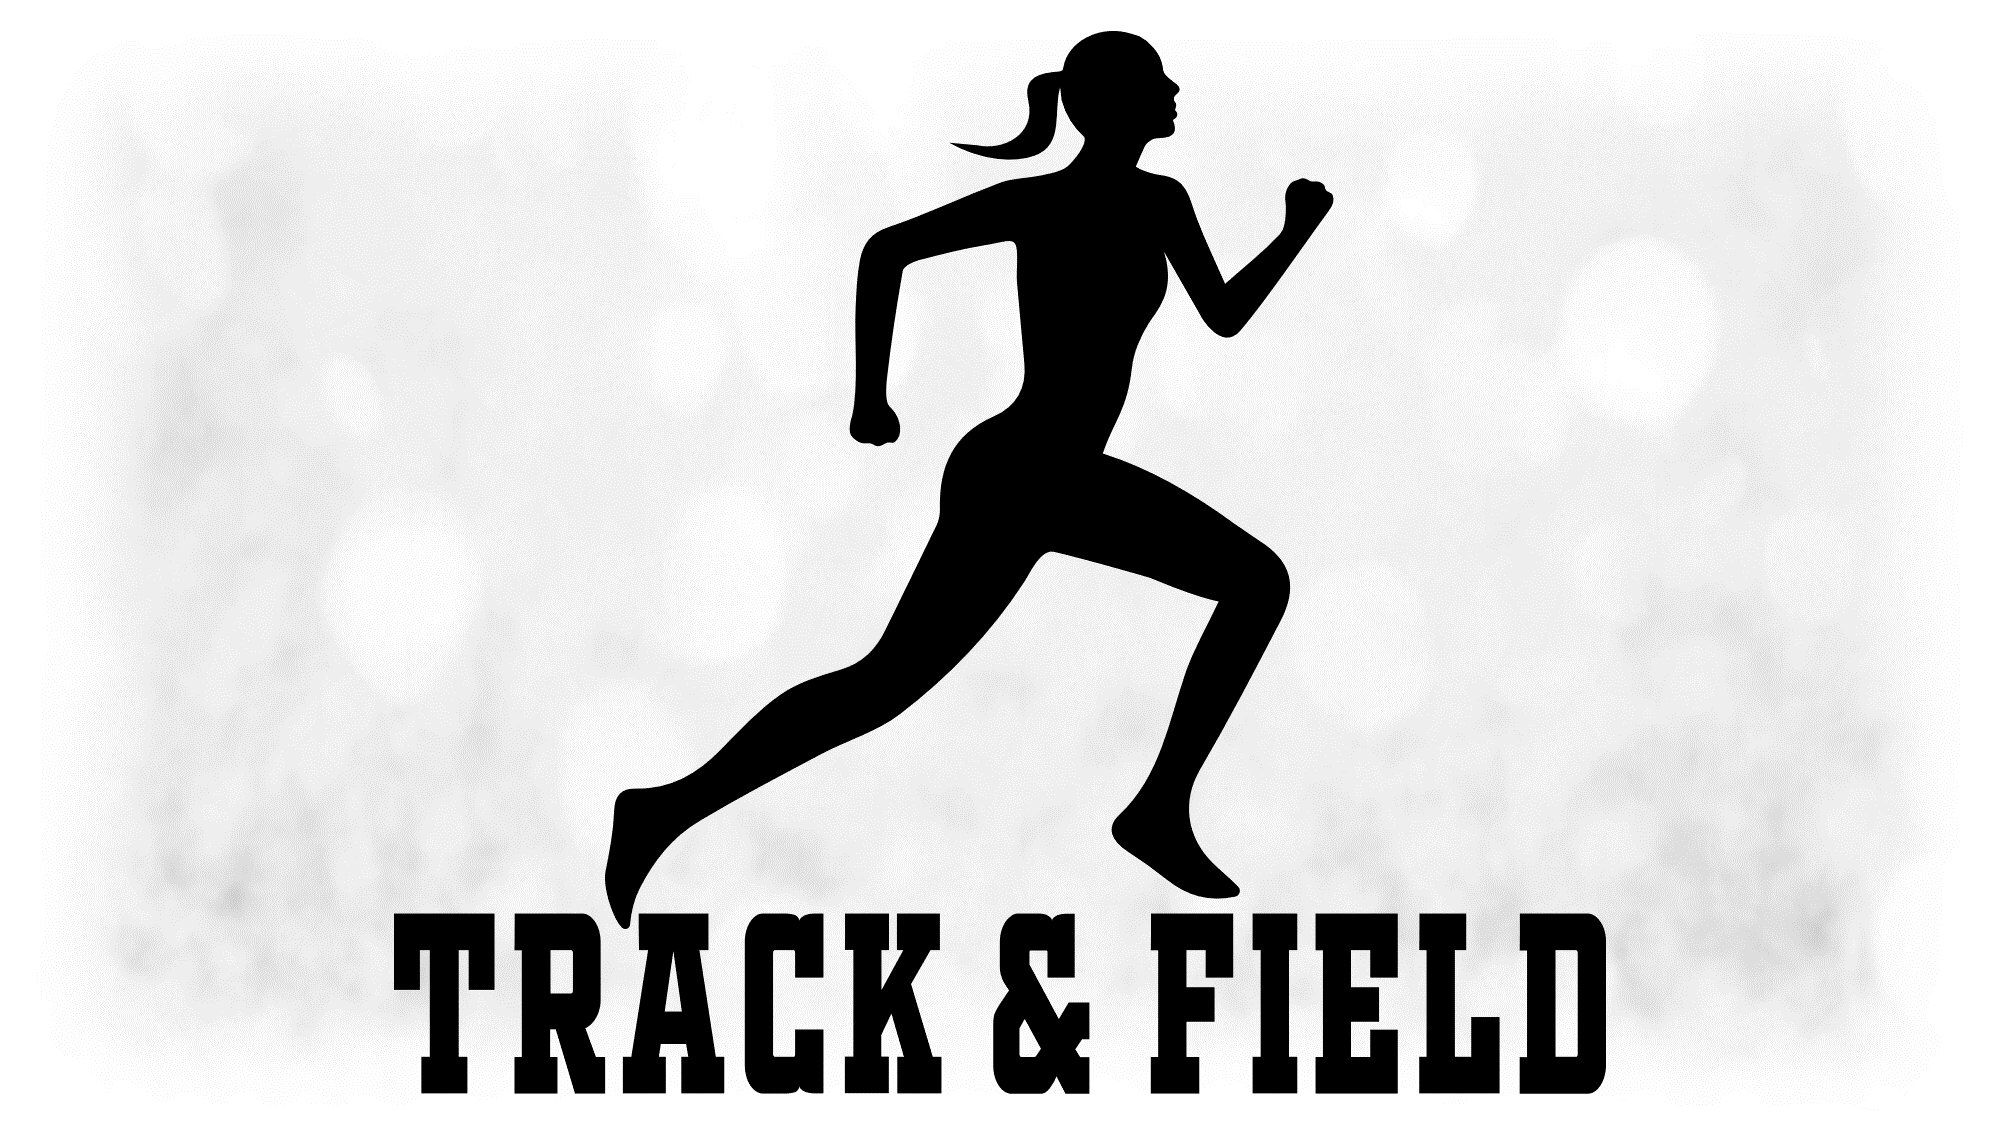 Sports Clipart Large Black White Female Athlete Running Etsy In 2021 Track And Field Track And Field Athlete Track And Field Sports